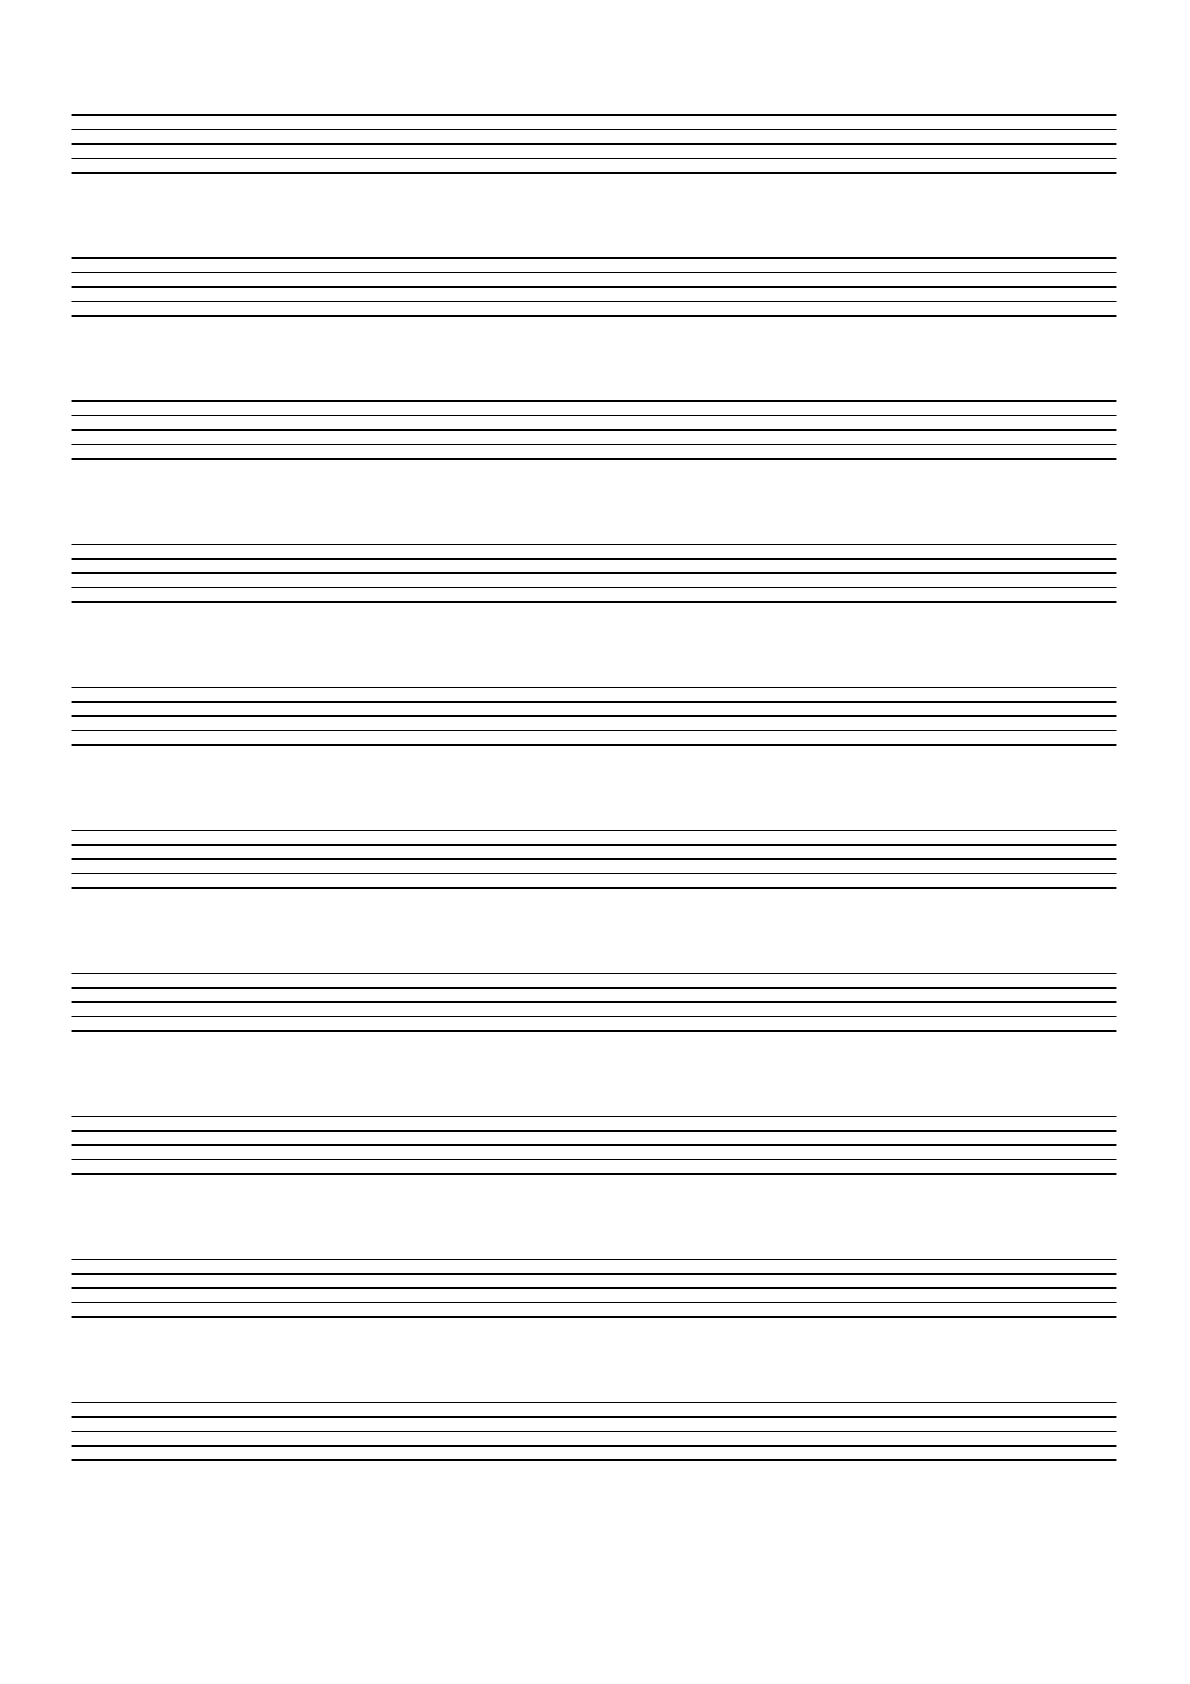 music paper with ten staves on a4